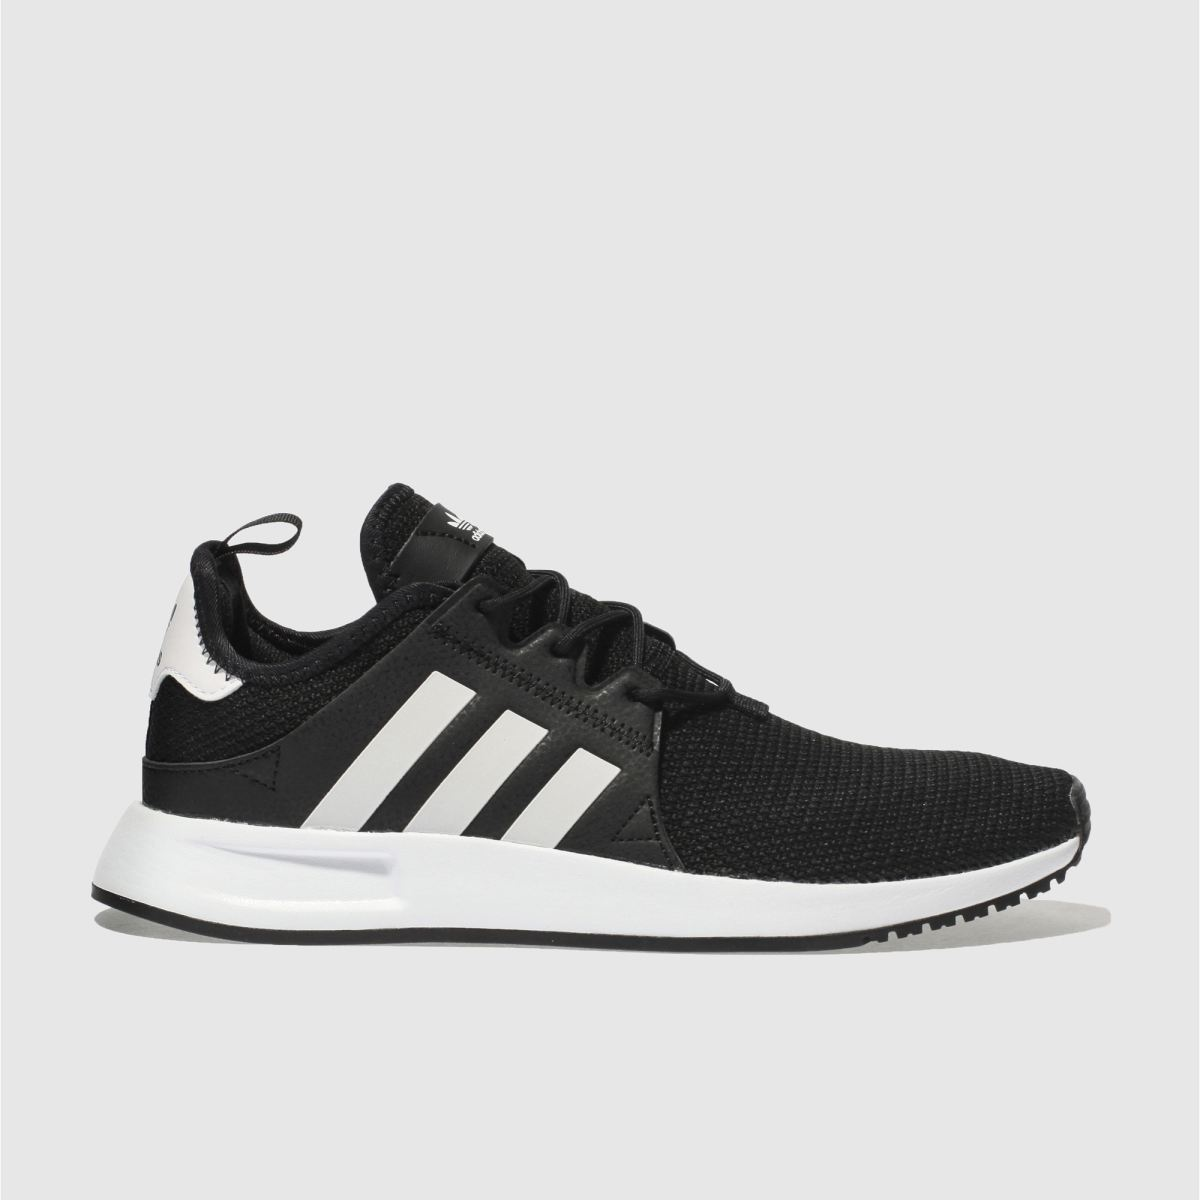 Adidas Black & White X_plr Trainers